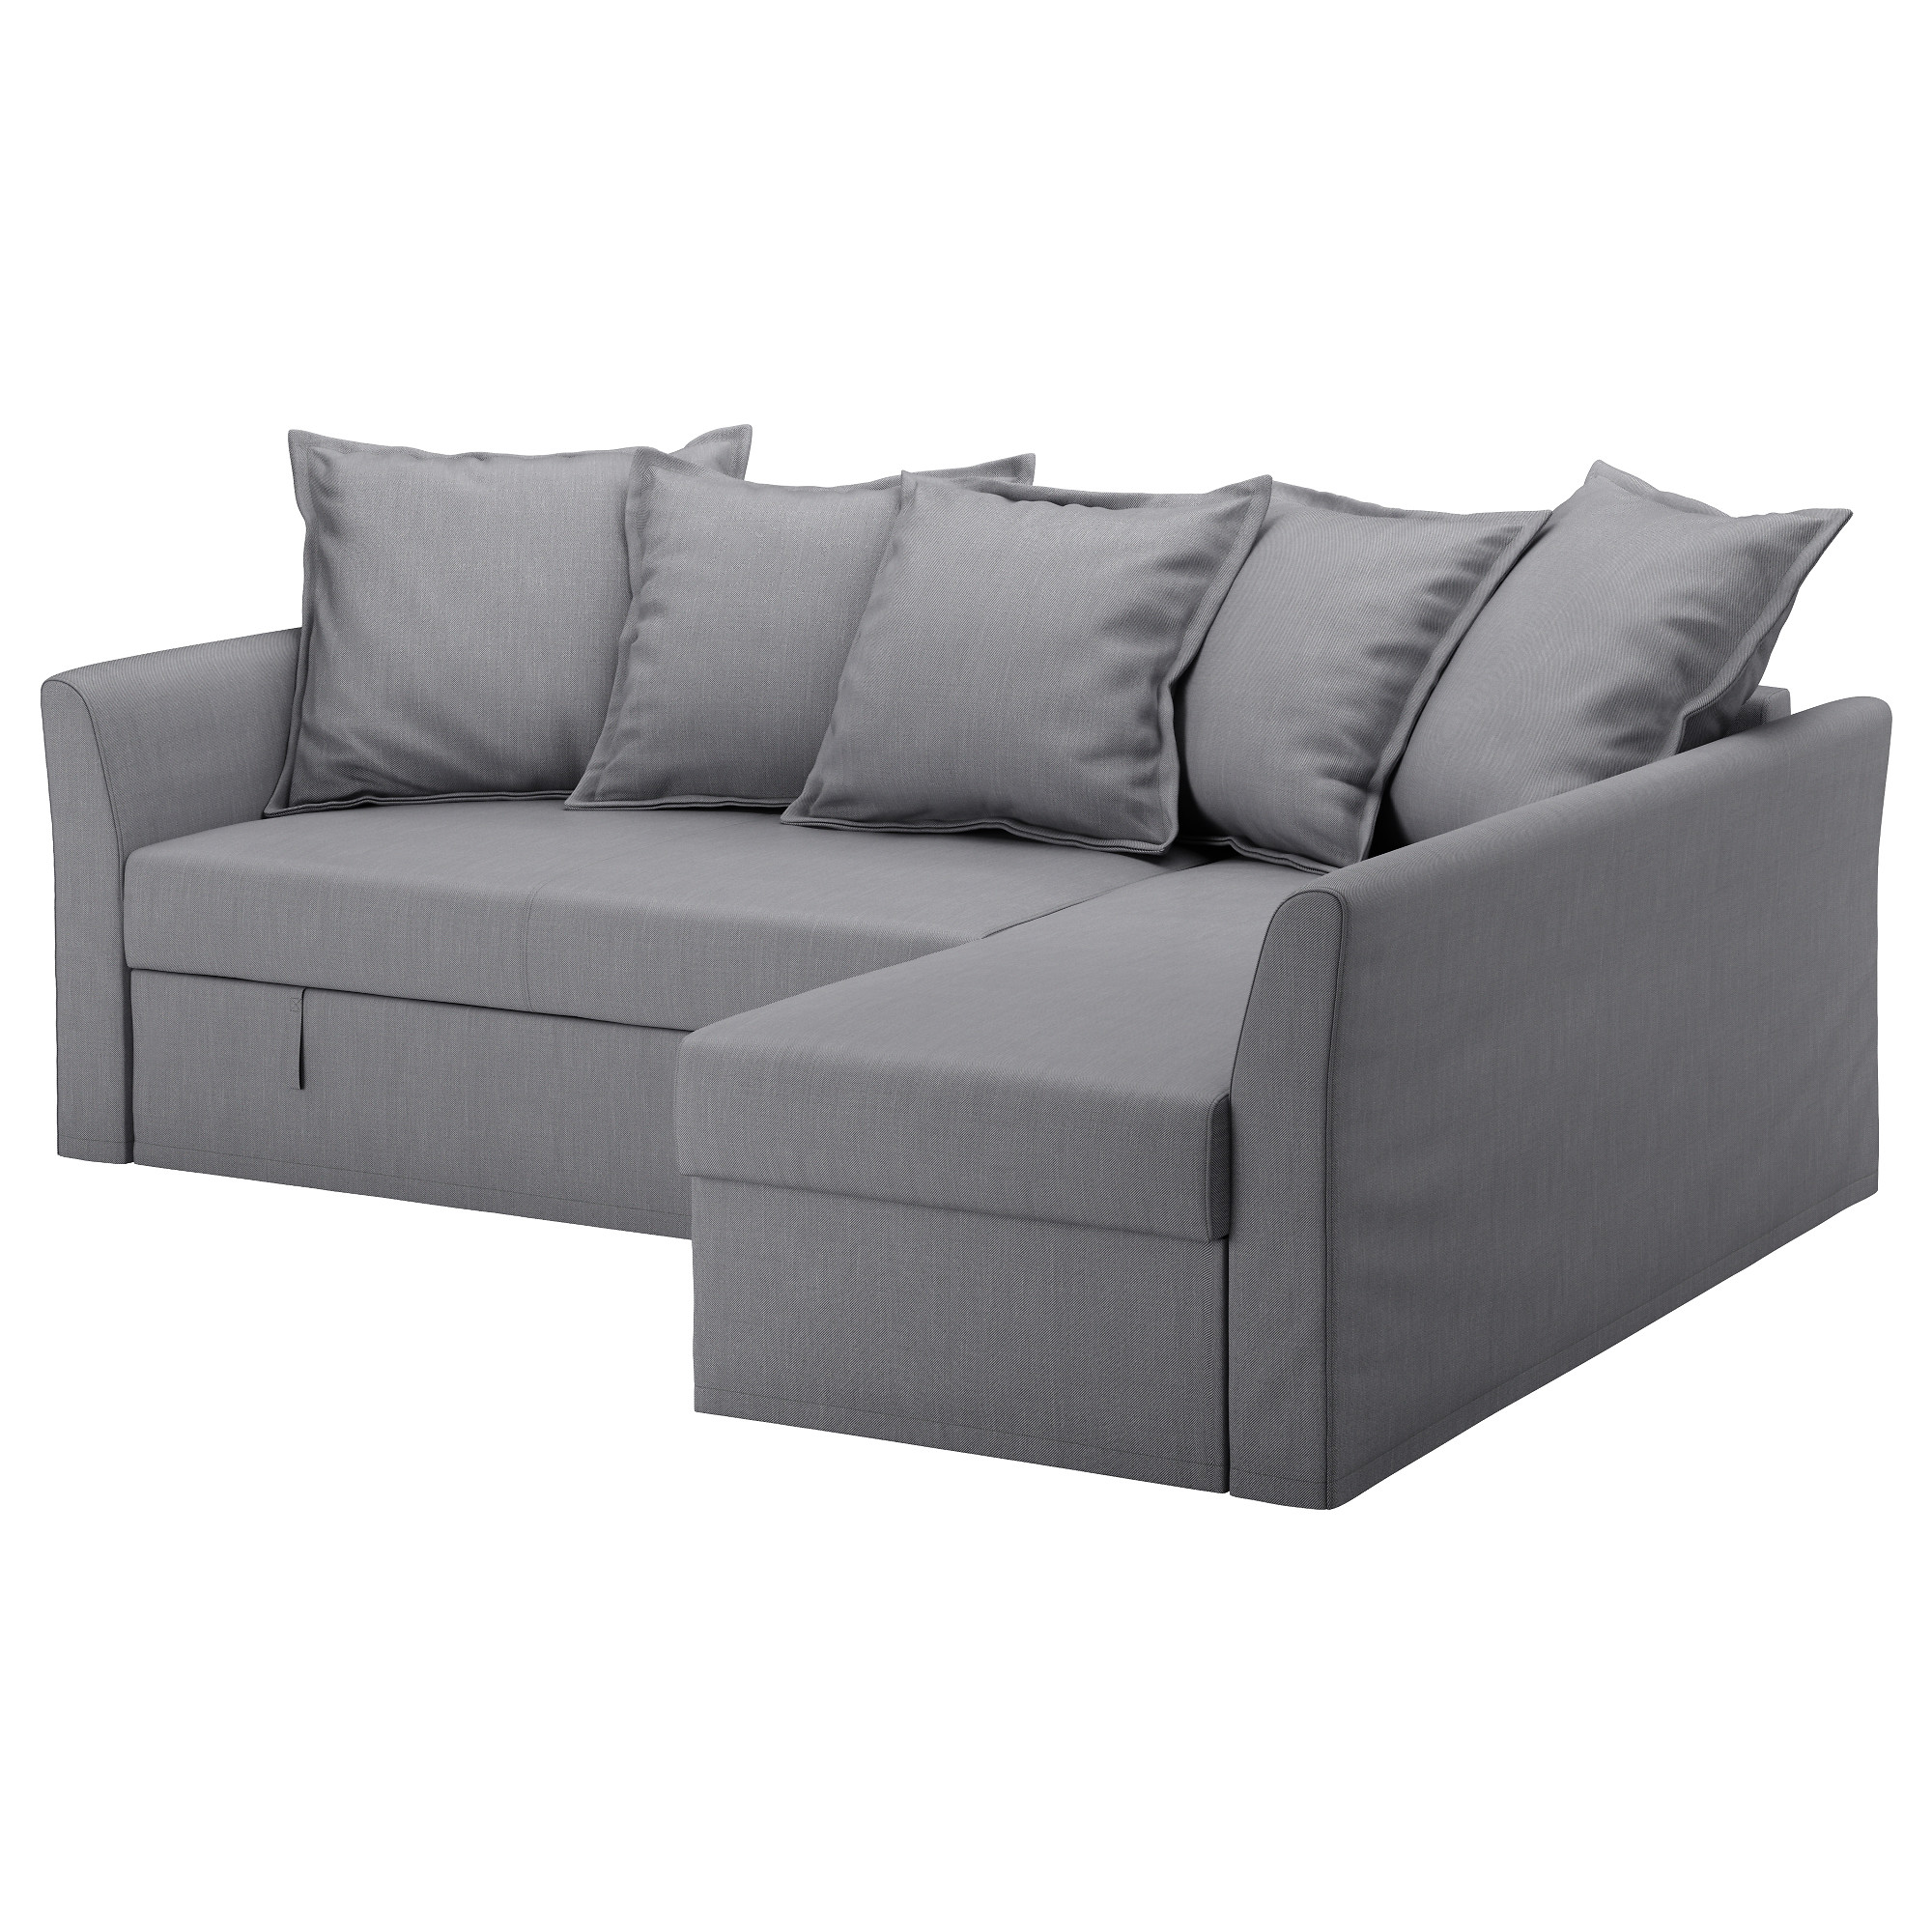 ideas large graceful couch chaise black lounge sofa cheap sectionals sleeper small sectional living leather and room